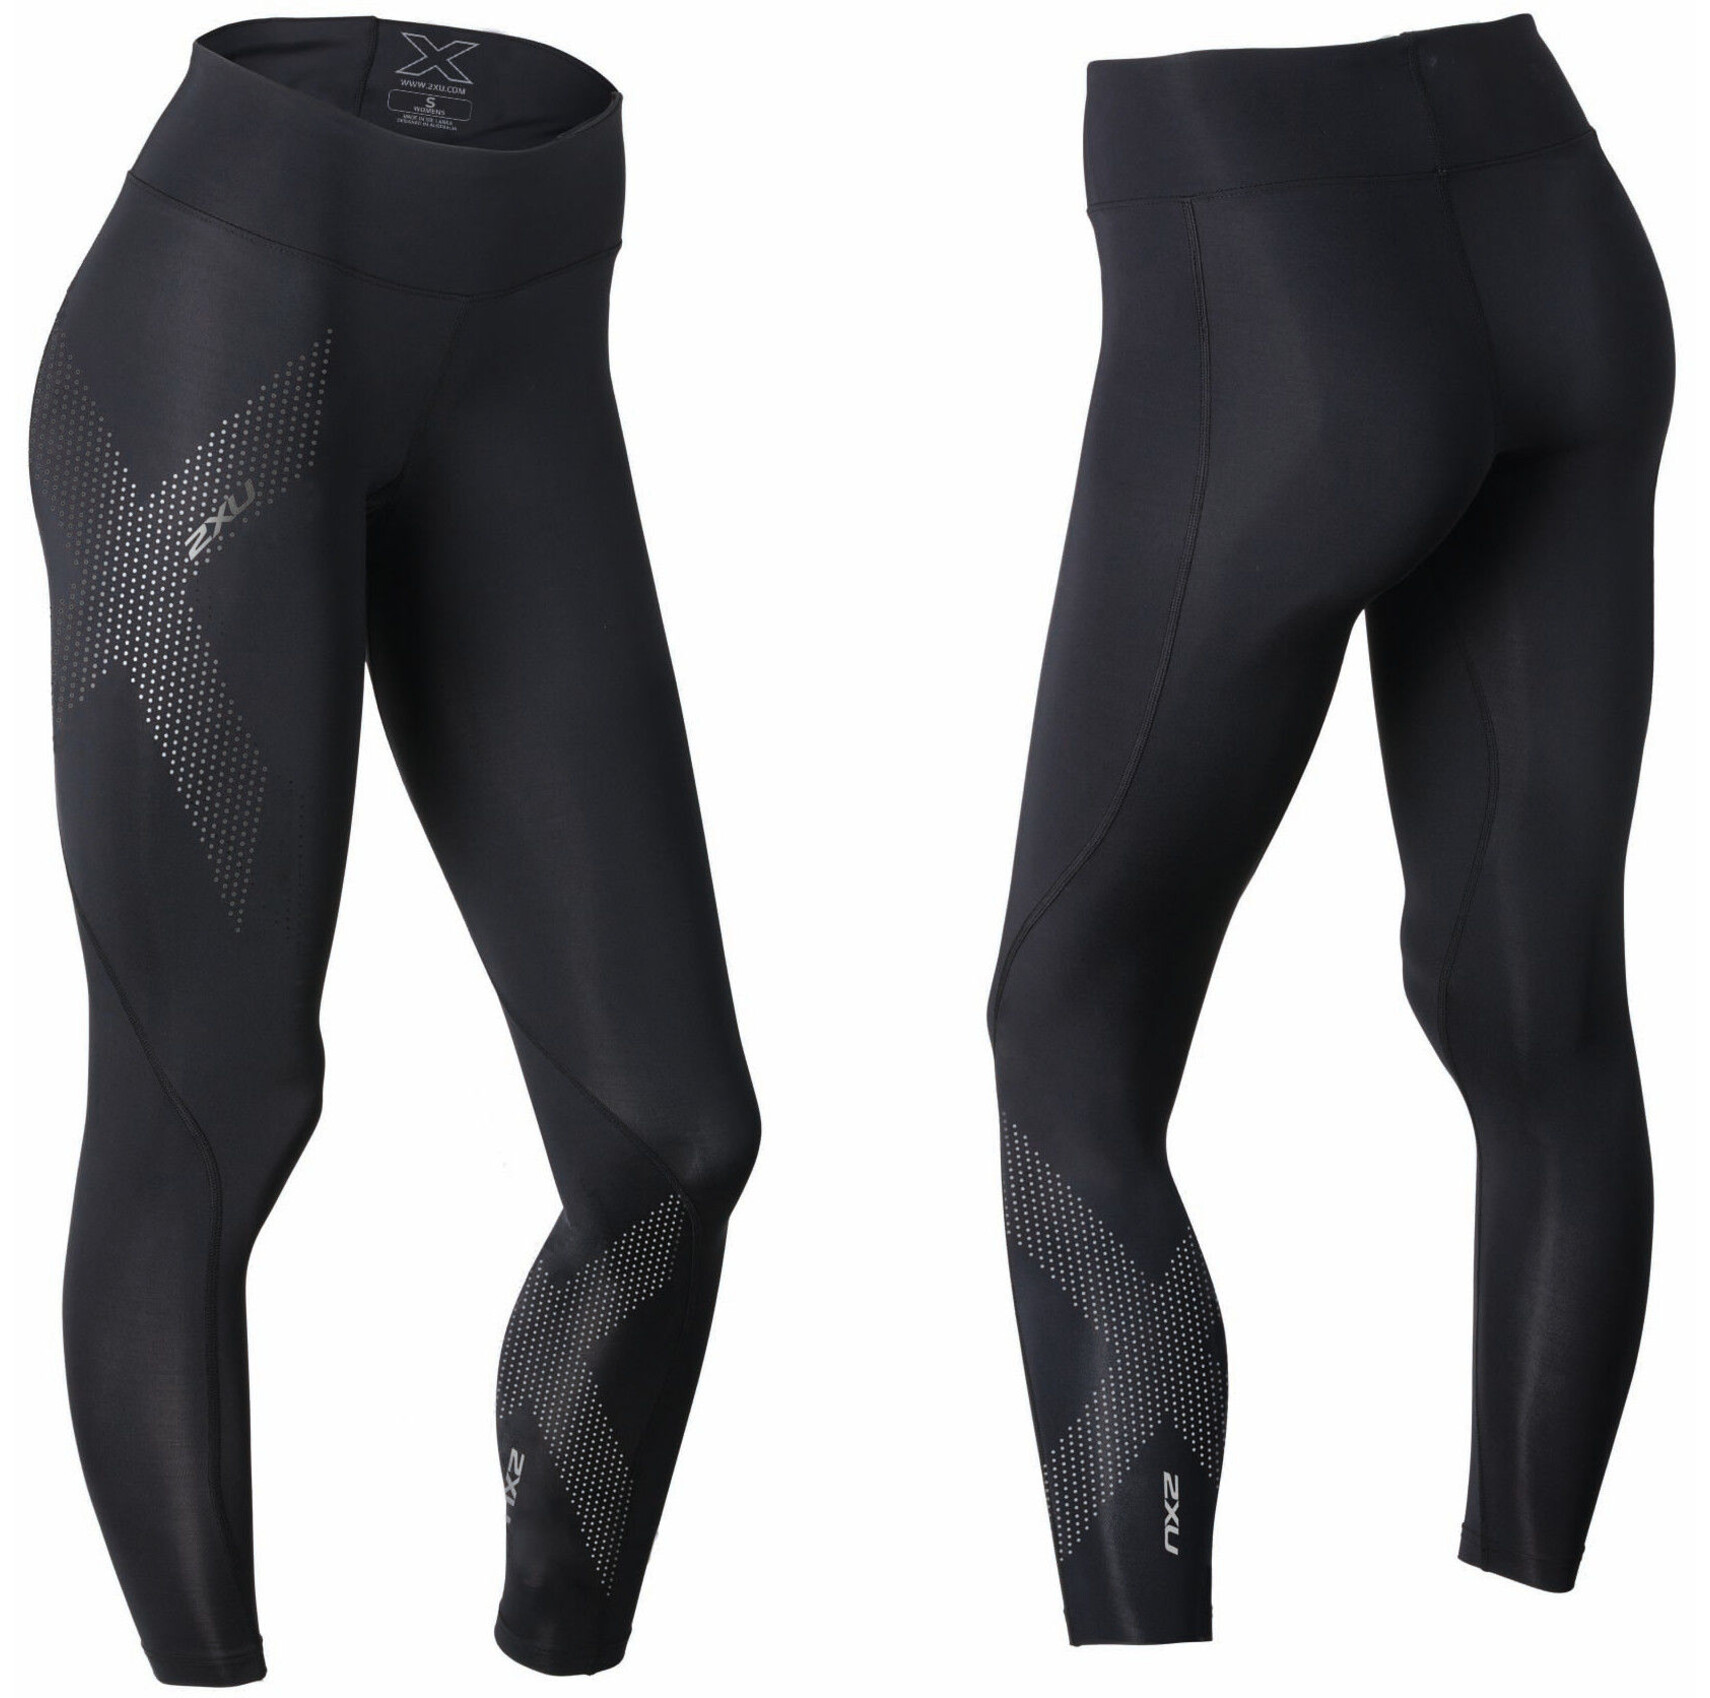 2xu mid rise compression tights long women black dotted reflective logo. Black Bedroom Furniture Sets. Home Design Ideas